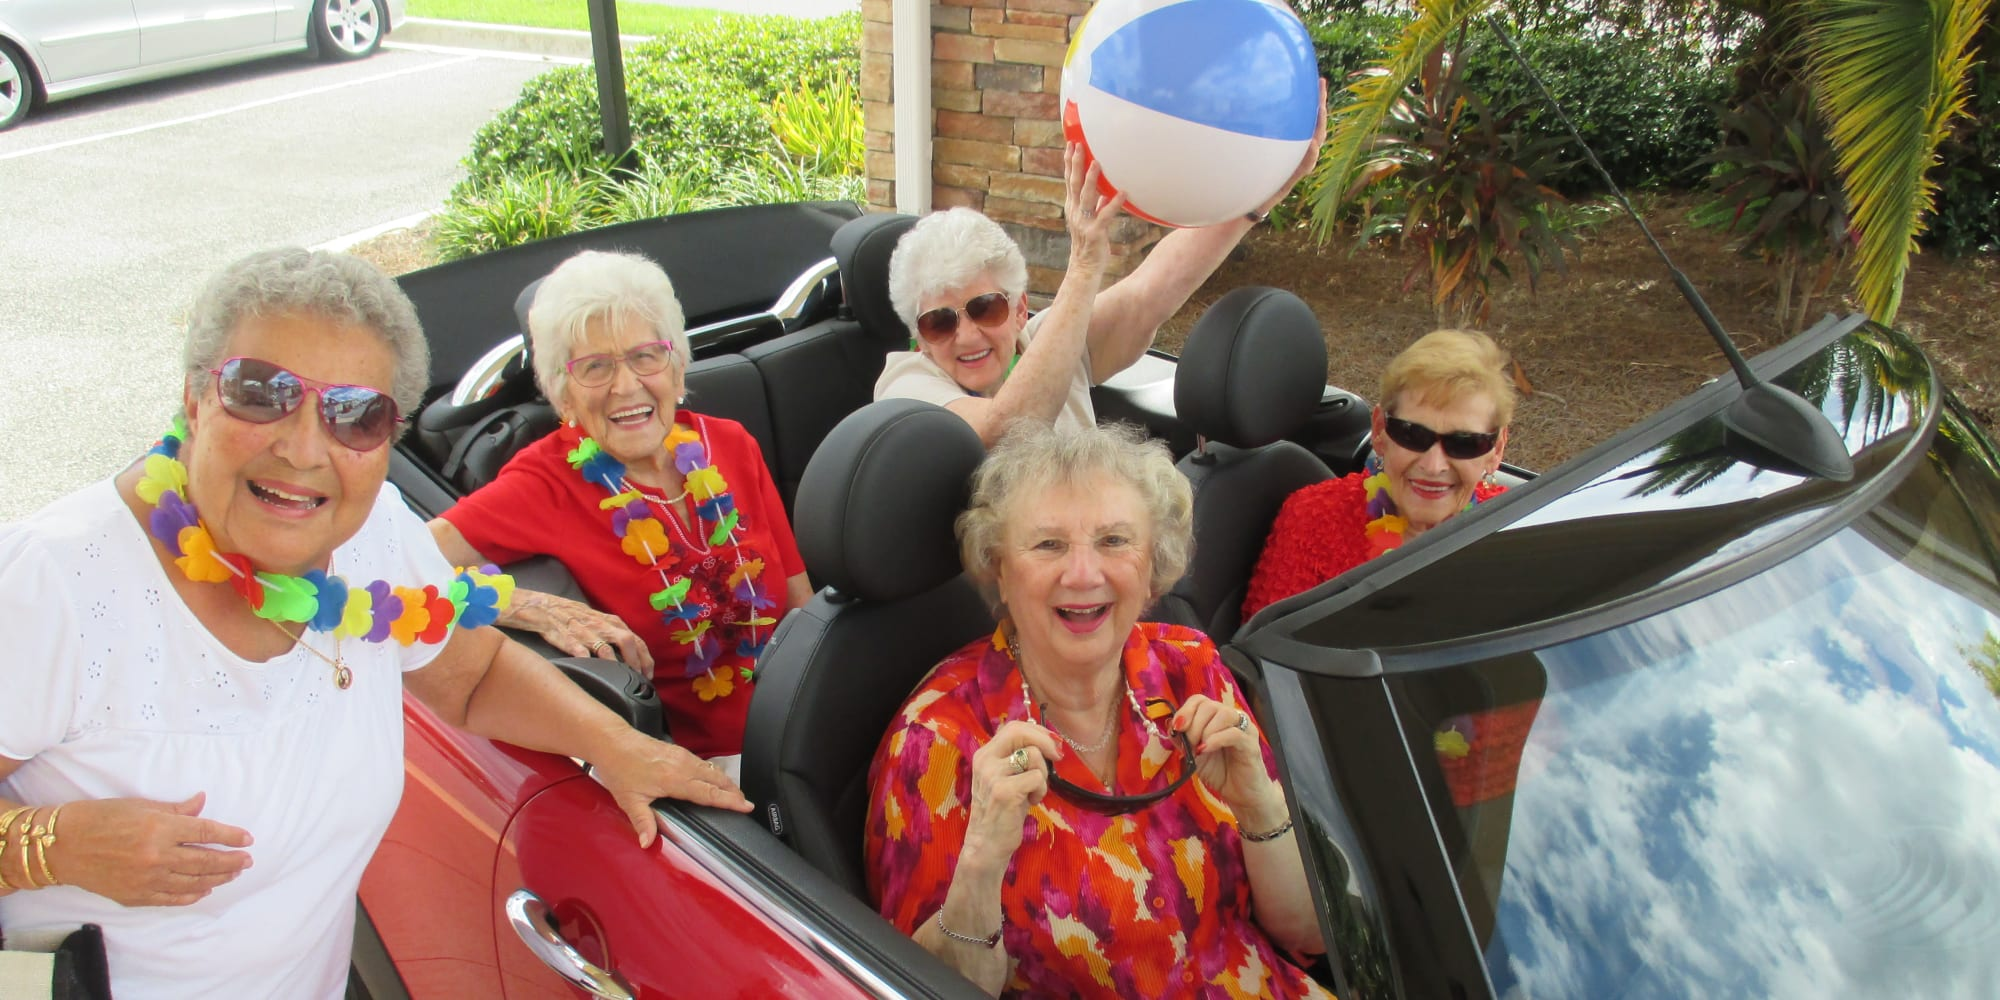 Residents from The Palms at LaQuinta Gracious Retirement Living in La Quinta, California dressed for a day at the beach